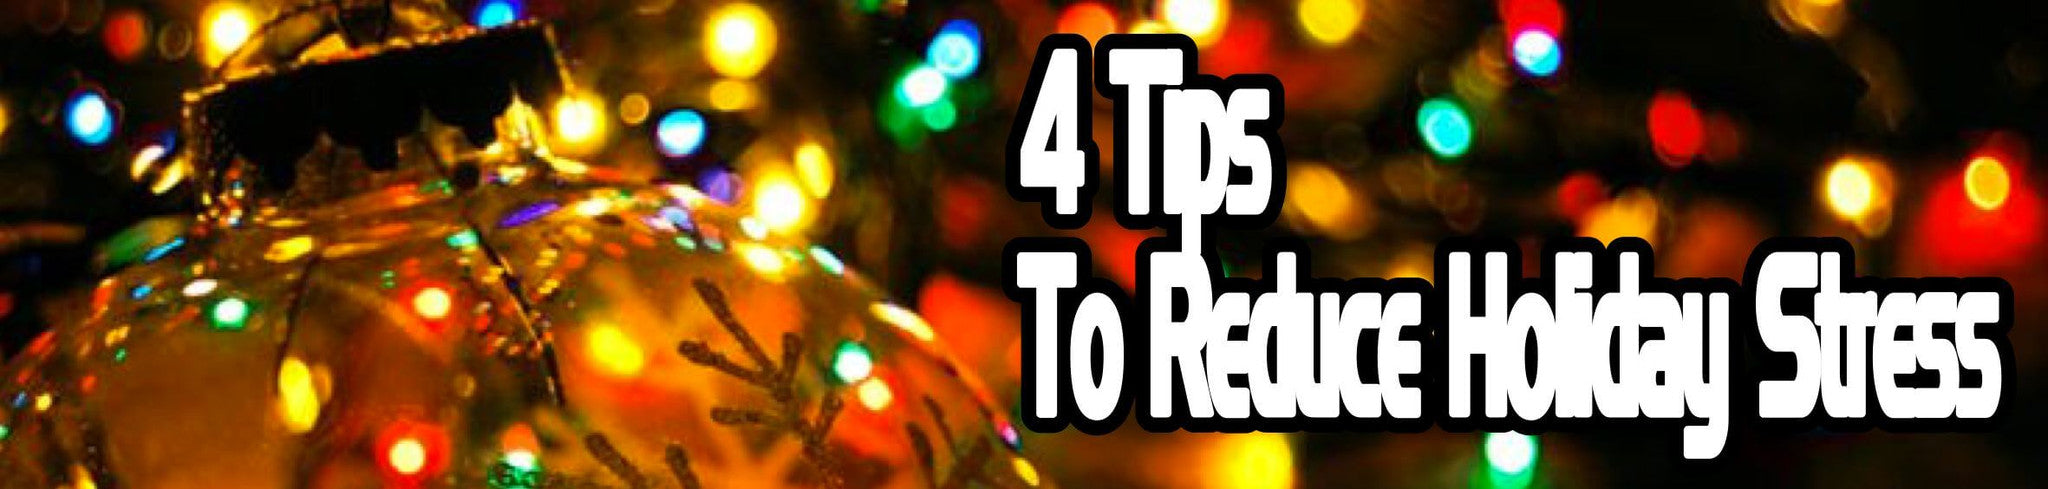 4 Tips to Reduce Holiday Stress - Eternal Delight